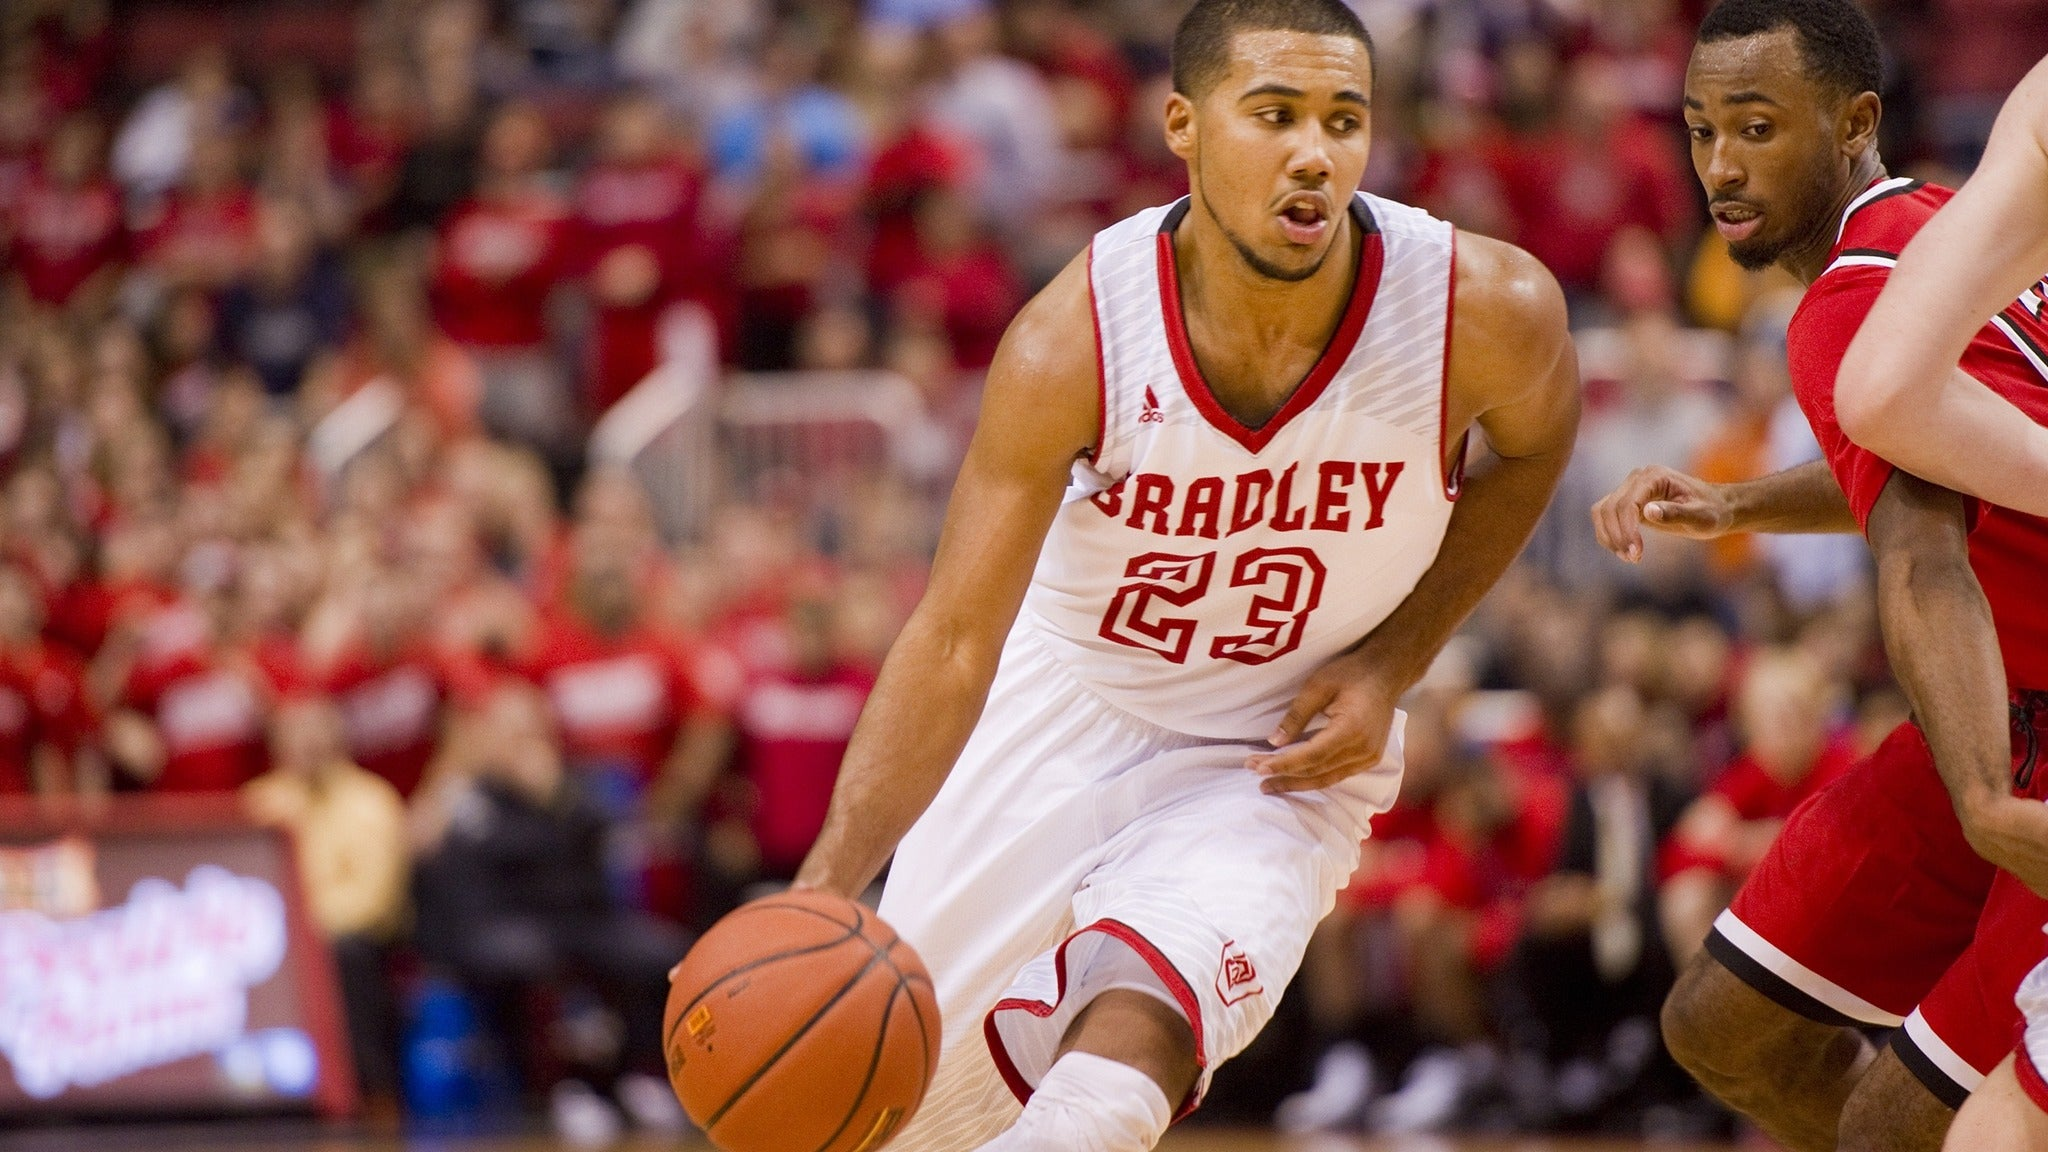 Bradley Braves vs. Nevada Wolf Pack Men's Basketball - Peoria, IL 61602